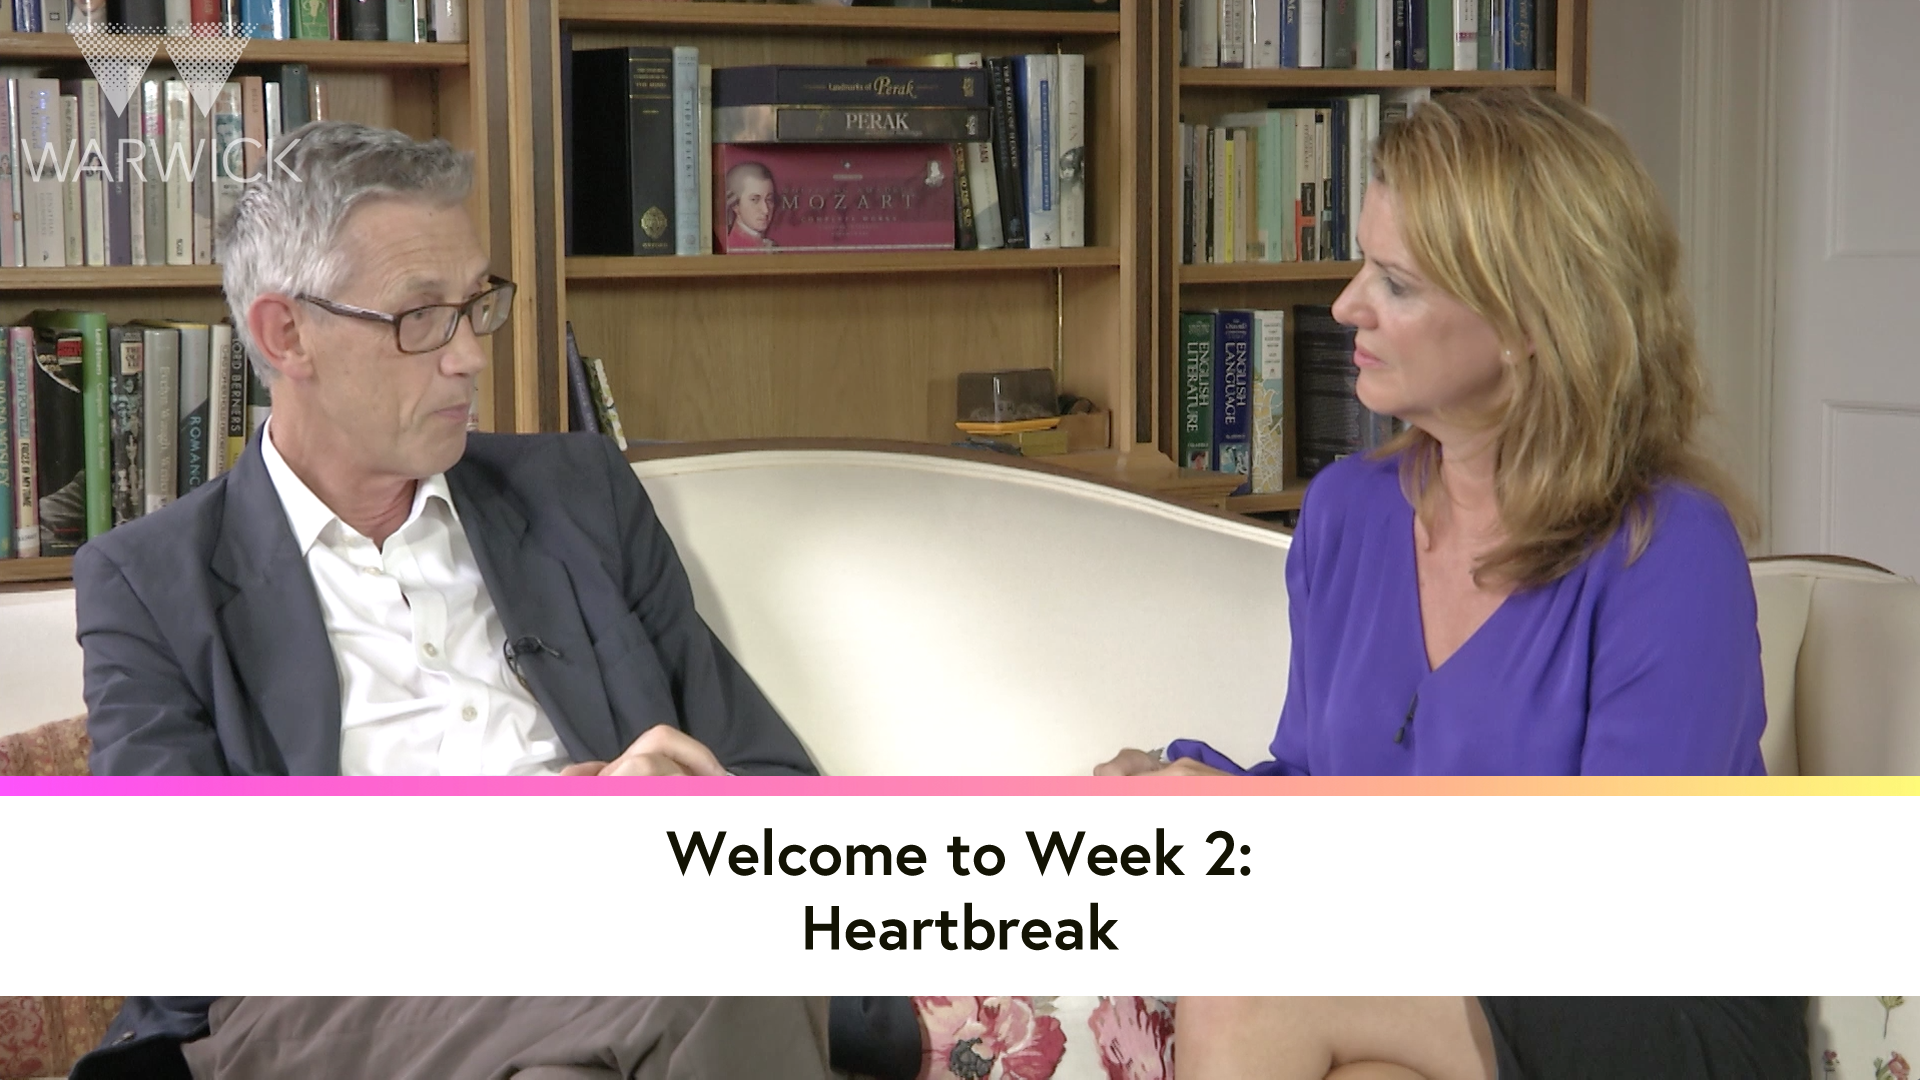 Welcome to Week 2: Heartbreak